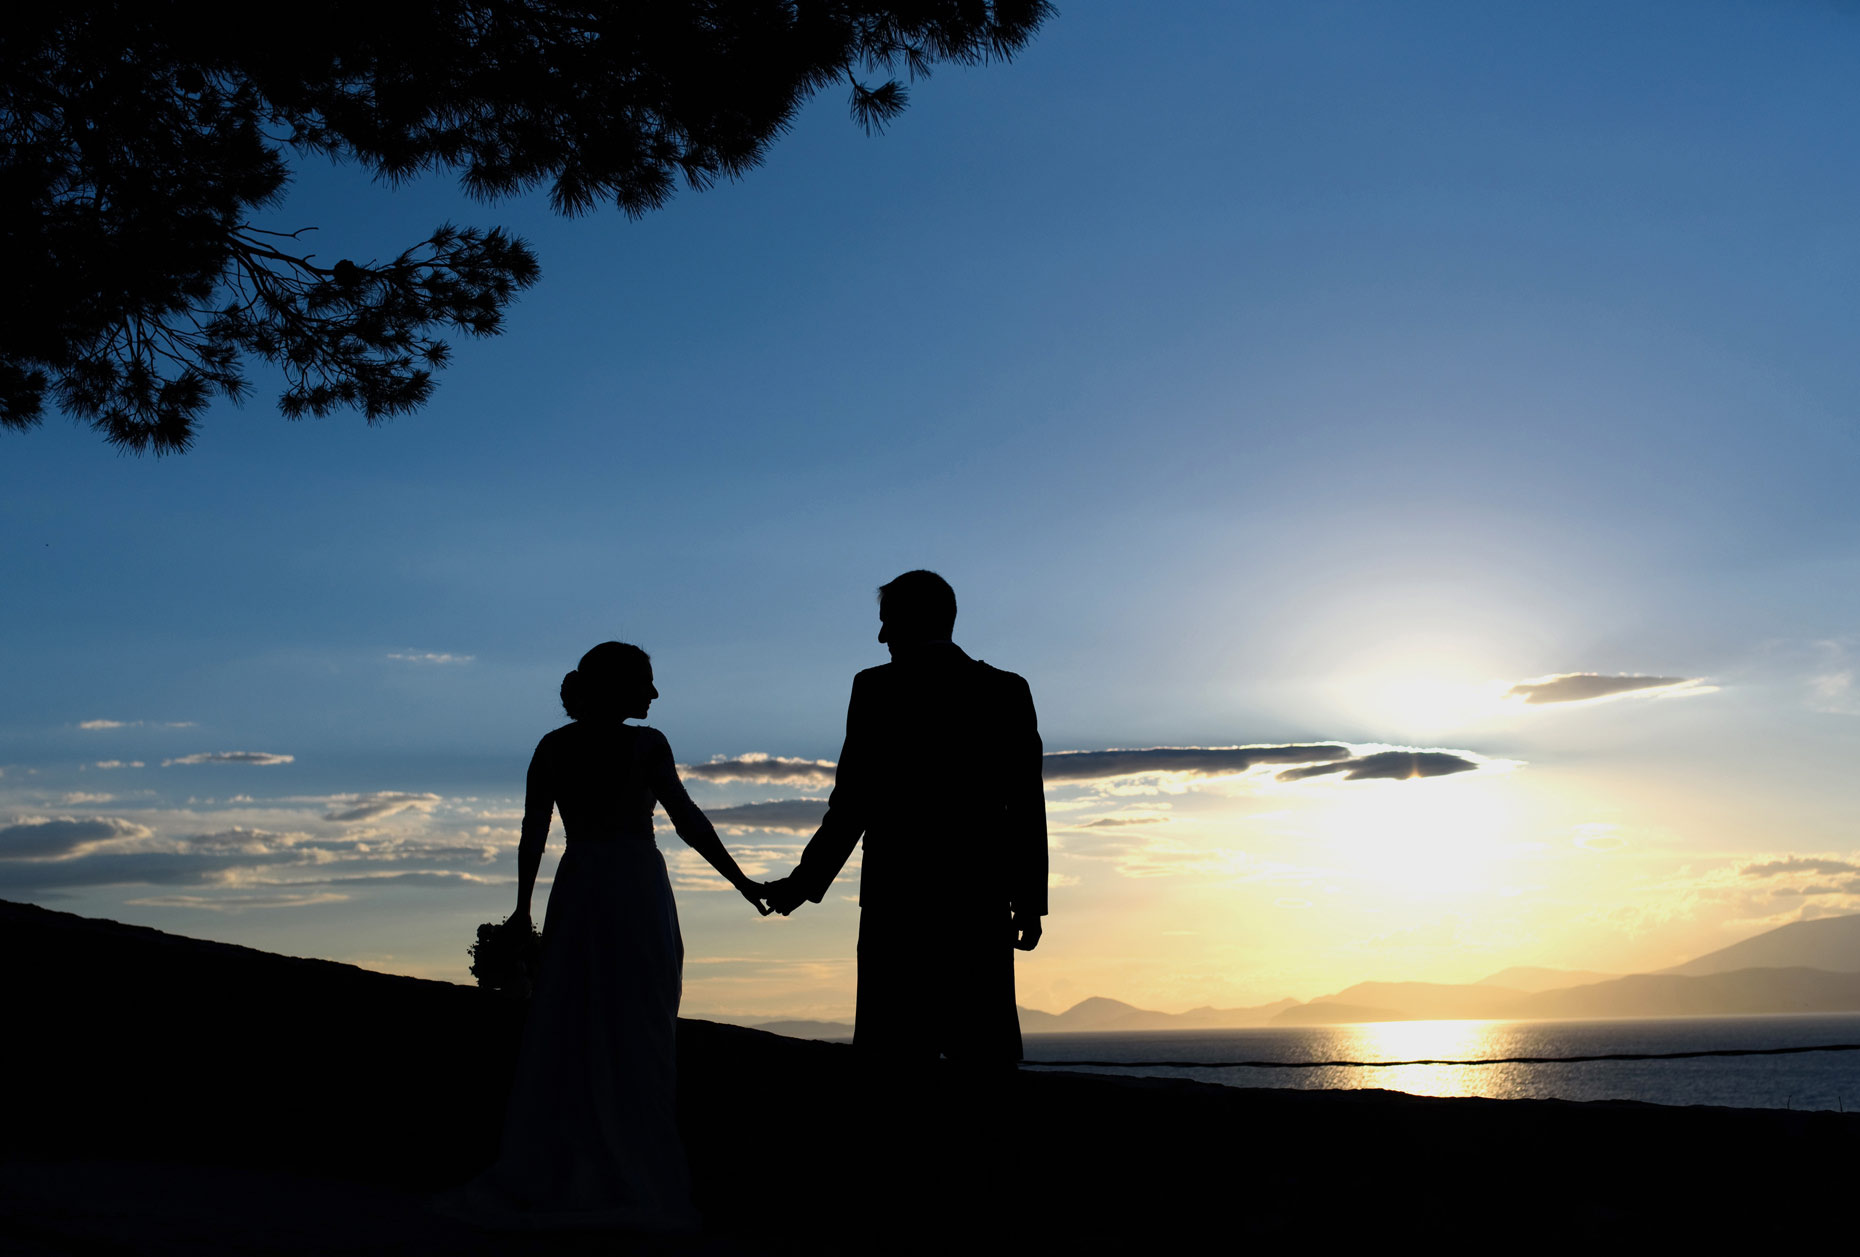 sunset wedding photo at hydra | γαμος στην Υδρα